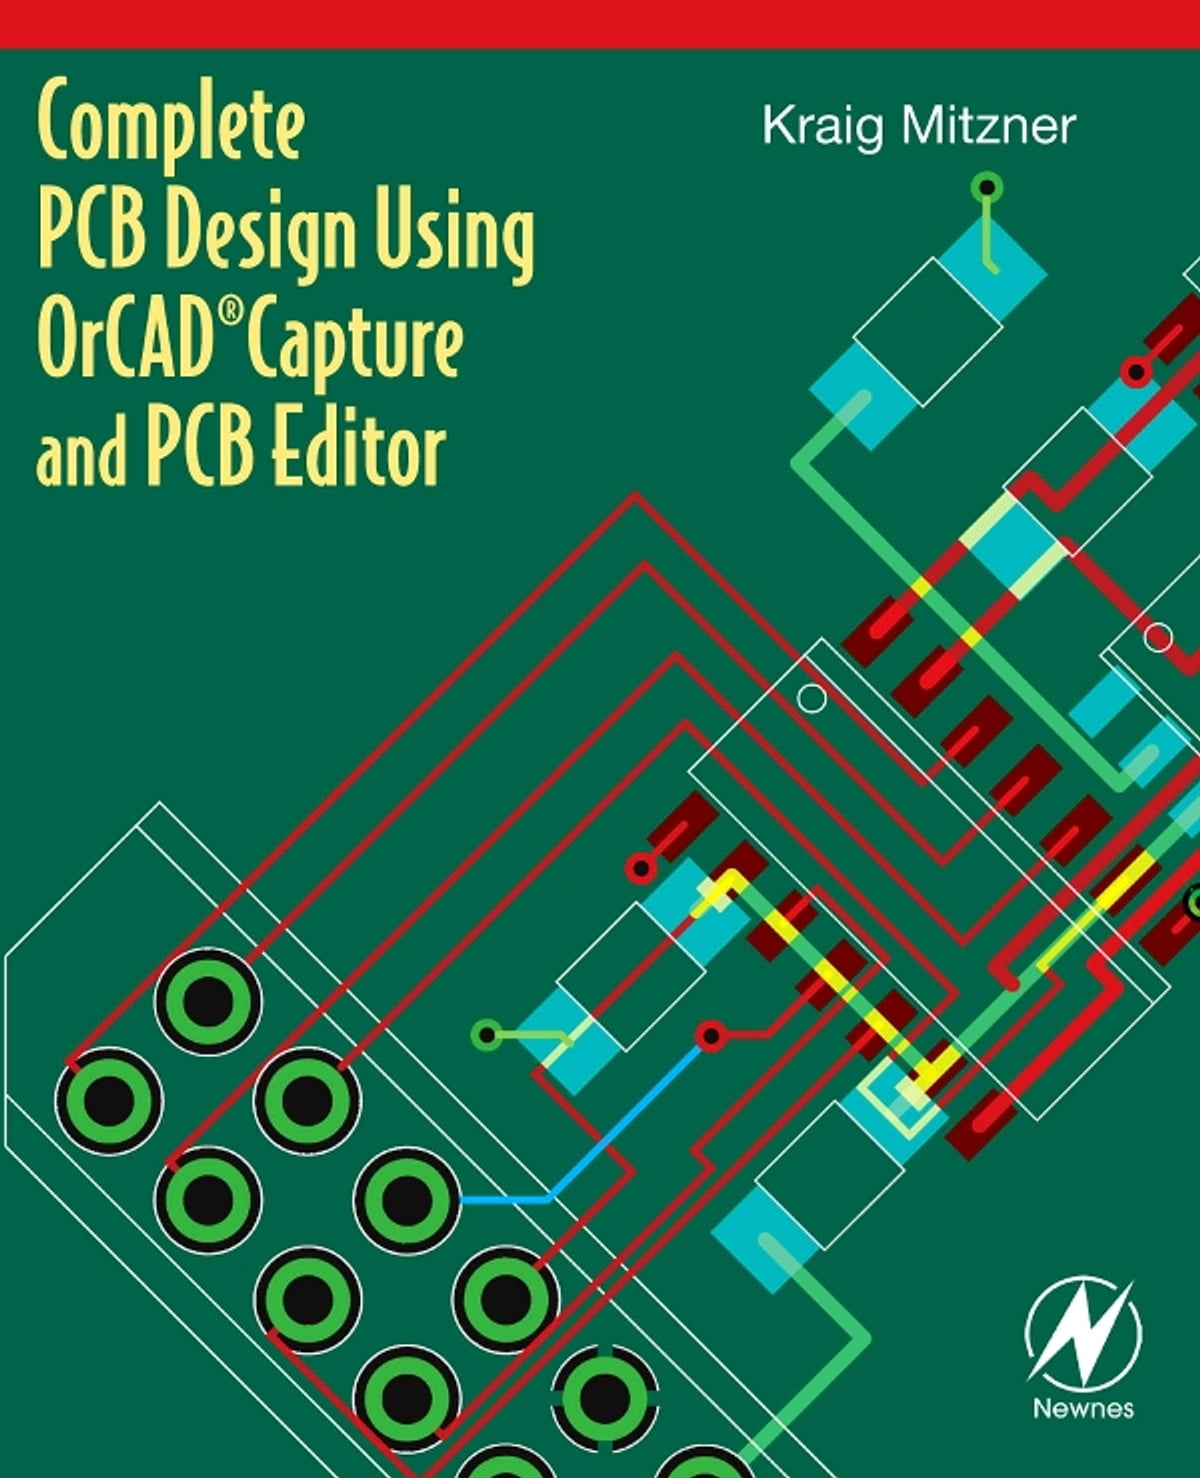 Complete Pcb Design Using Orcad Capture And Editor Ebook By Printed Circuit Board Process First Kraig Mitzner 9780080943541 Rakuten Kobo